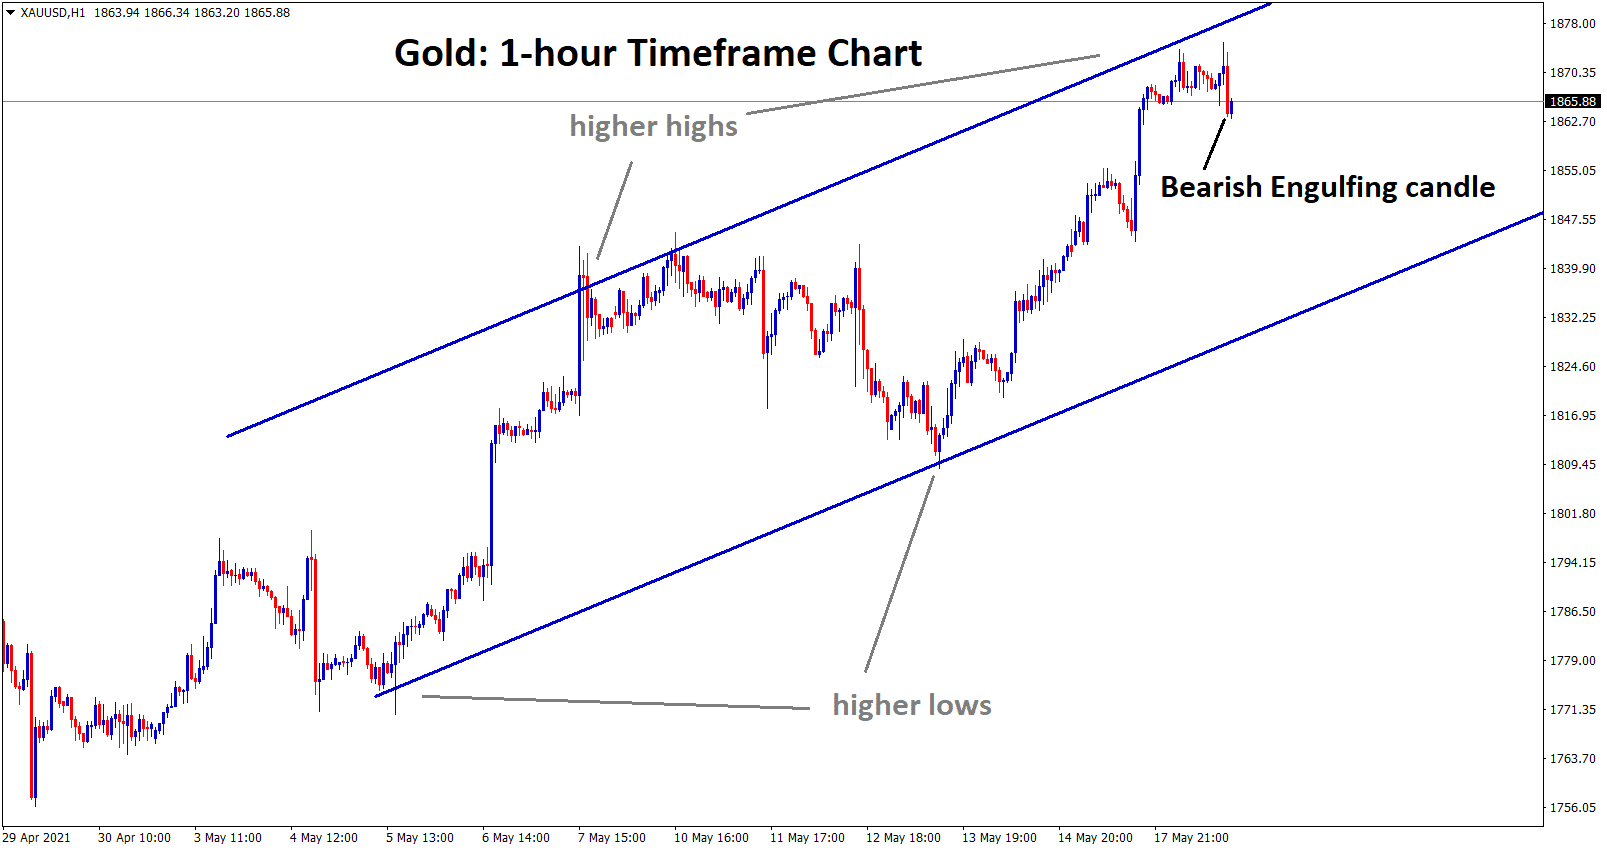 Gold at the higher high zone creating a bearish engulfing candle.